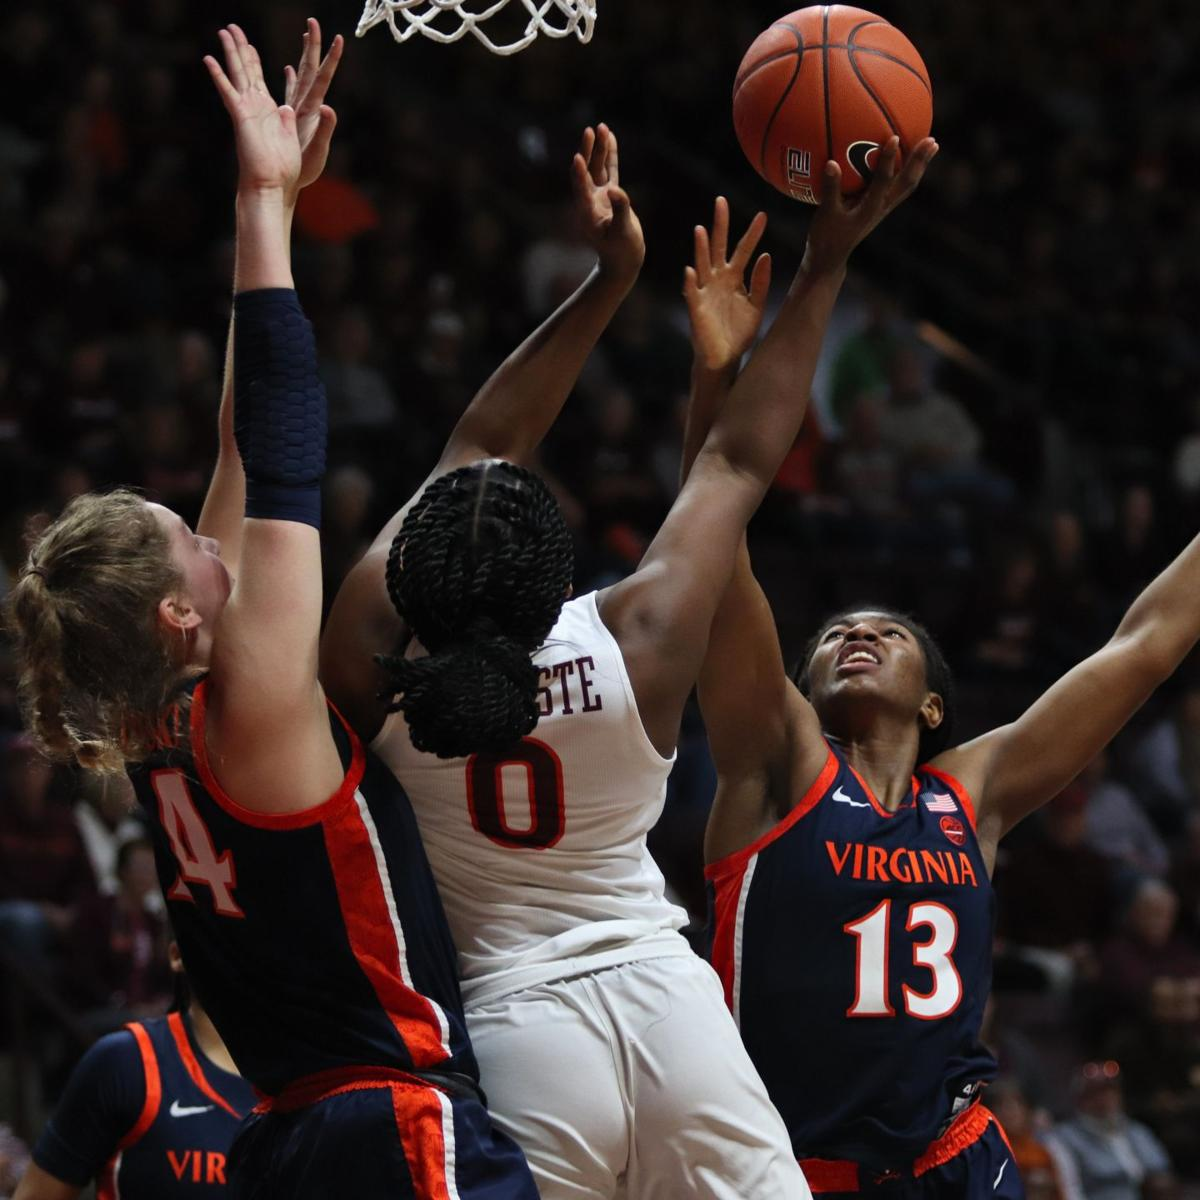 VT women's Basketball vs. UVA